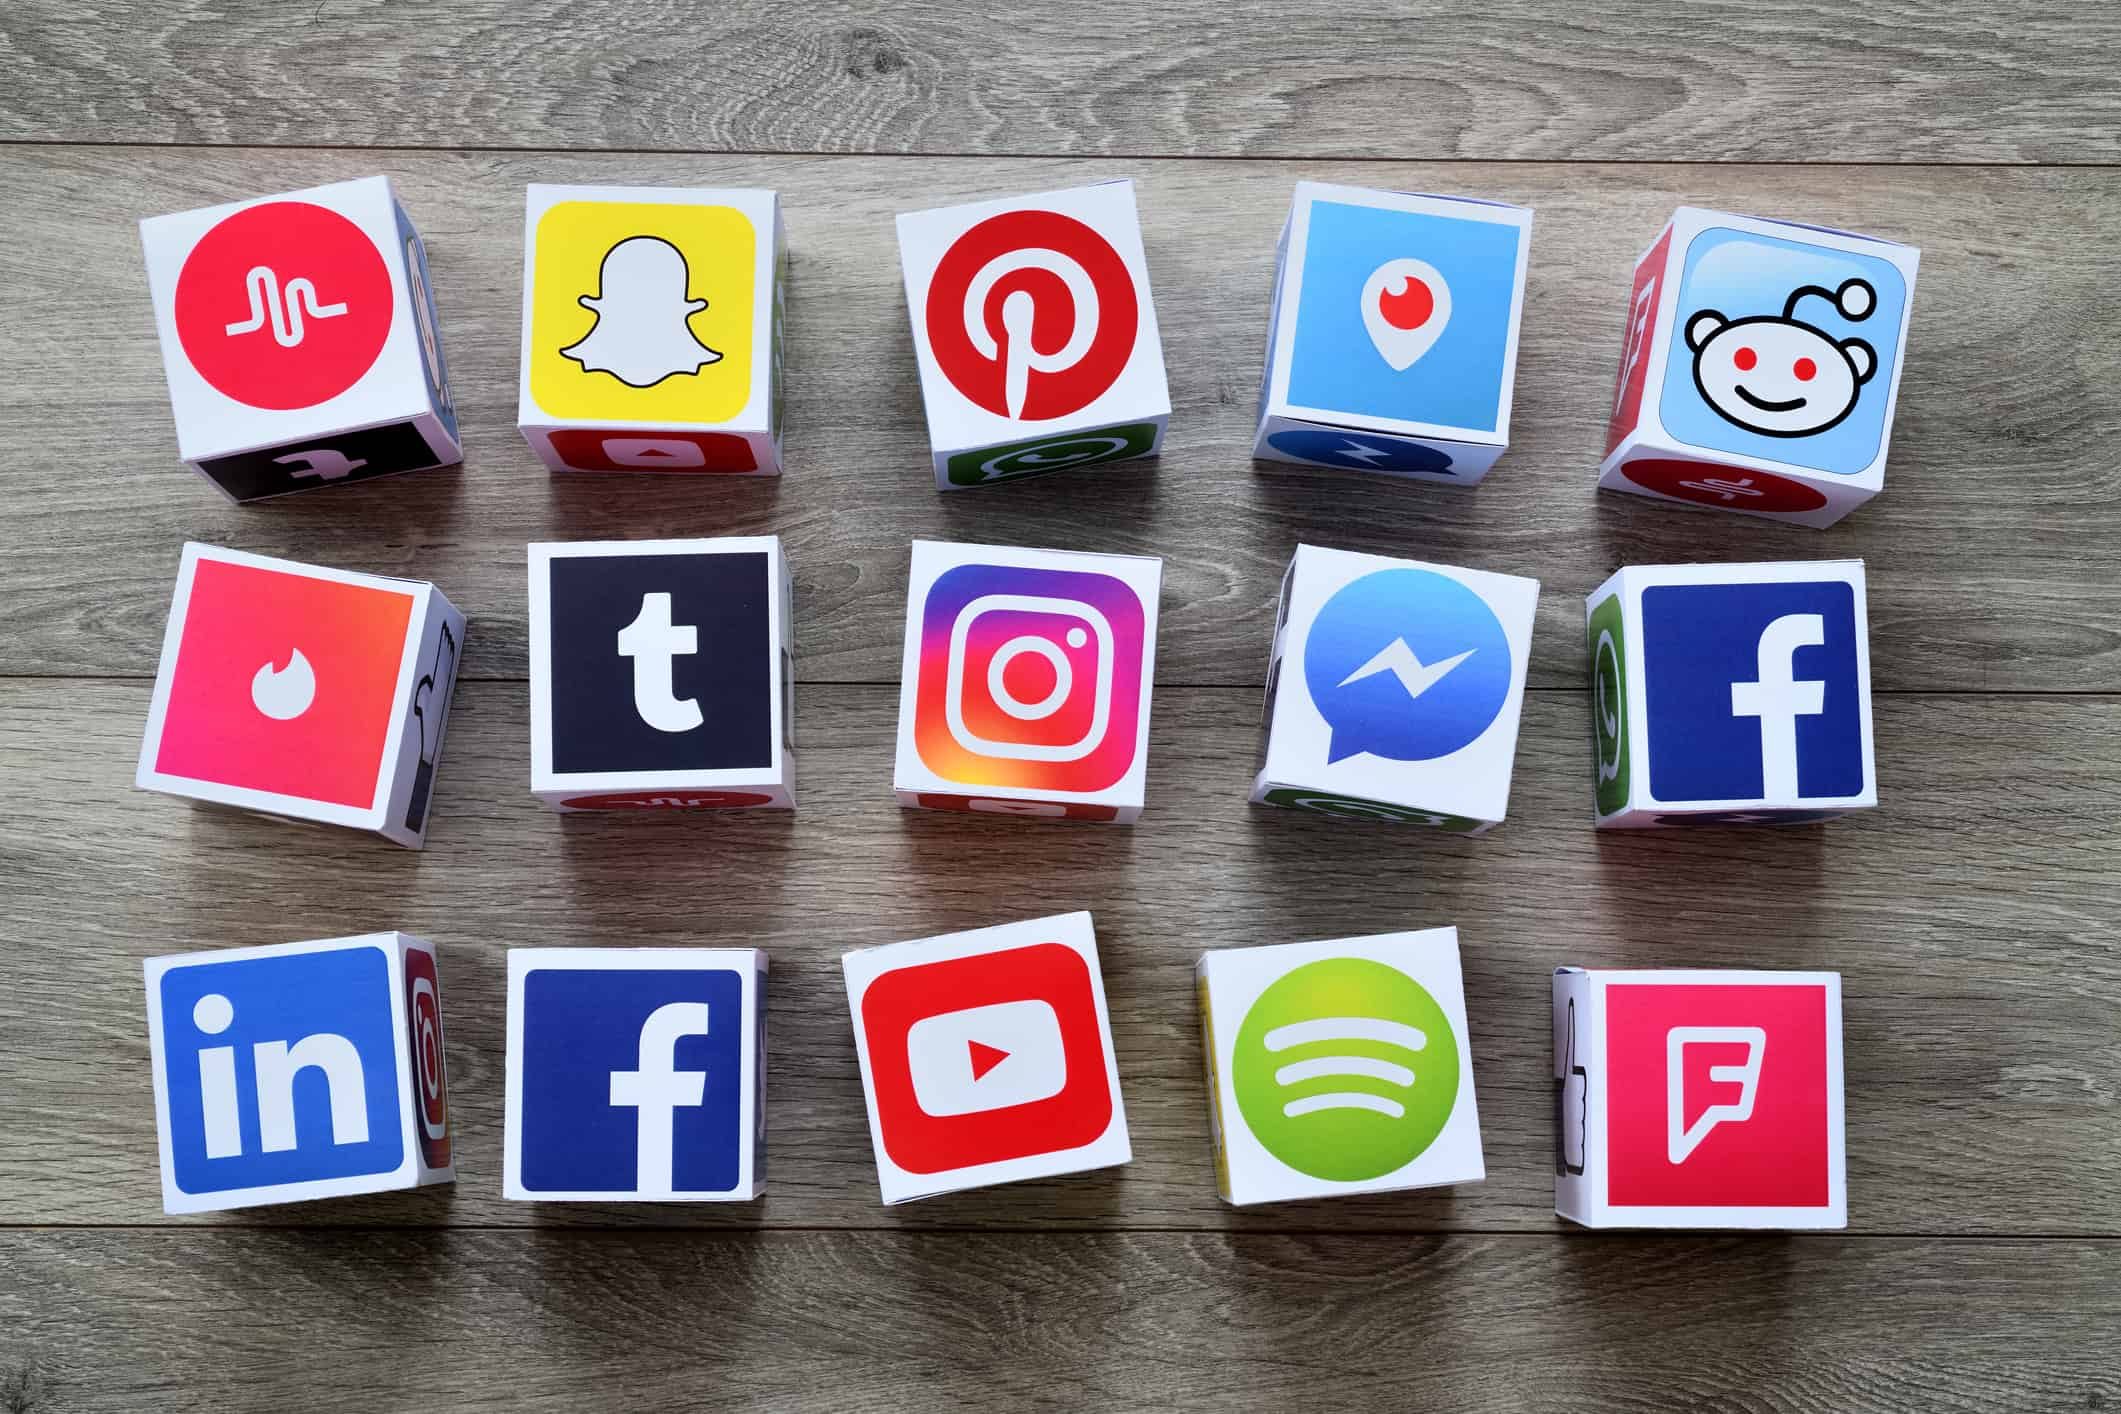 Get Trending on Social Media with These 4 Steps